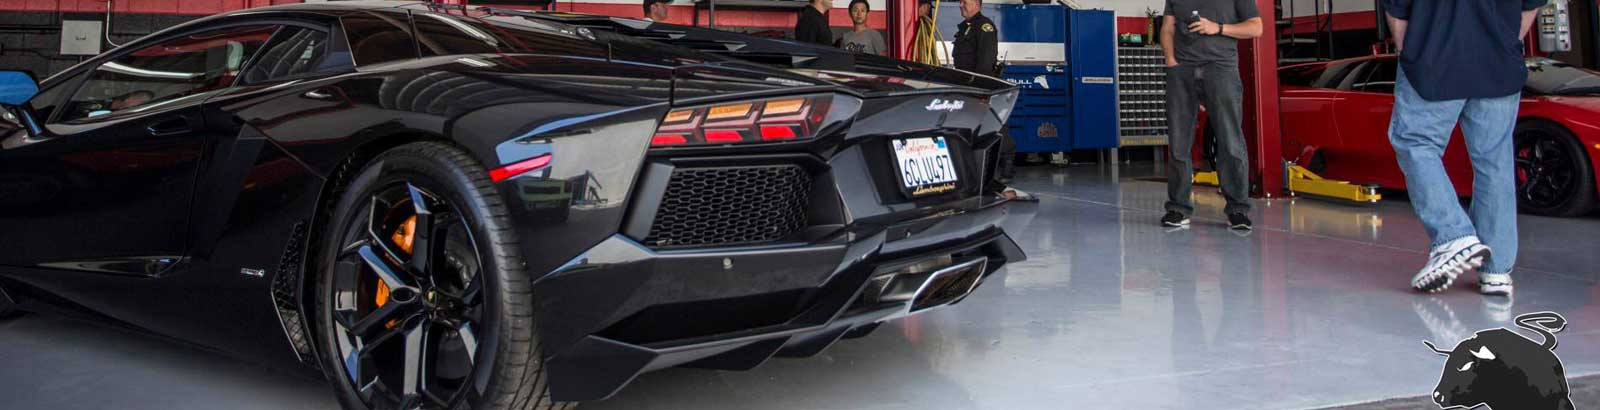 Lamborghini being serviced at Raging Bull Performance